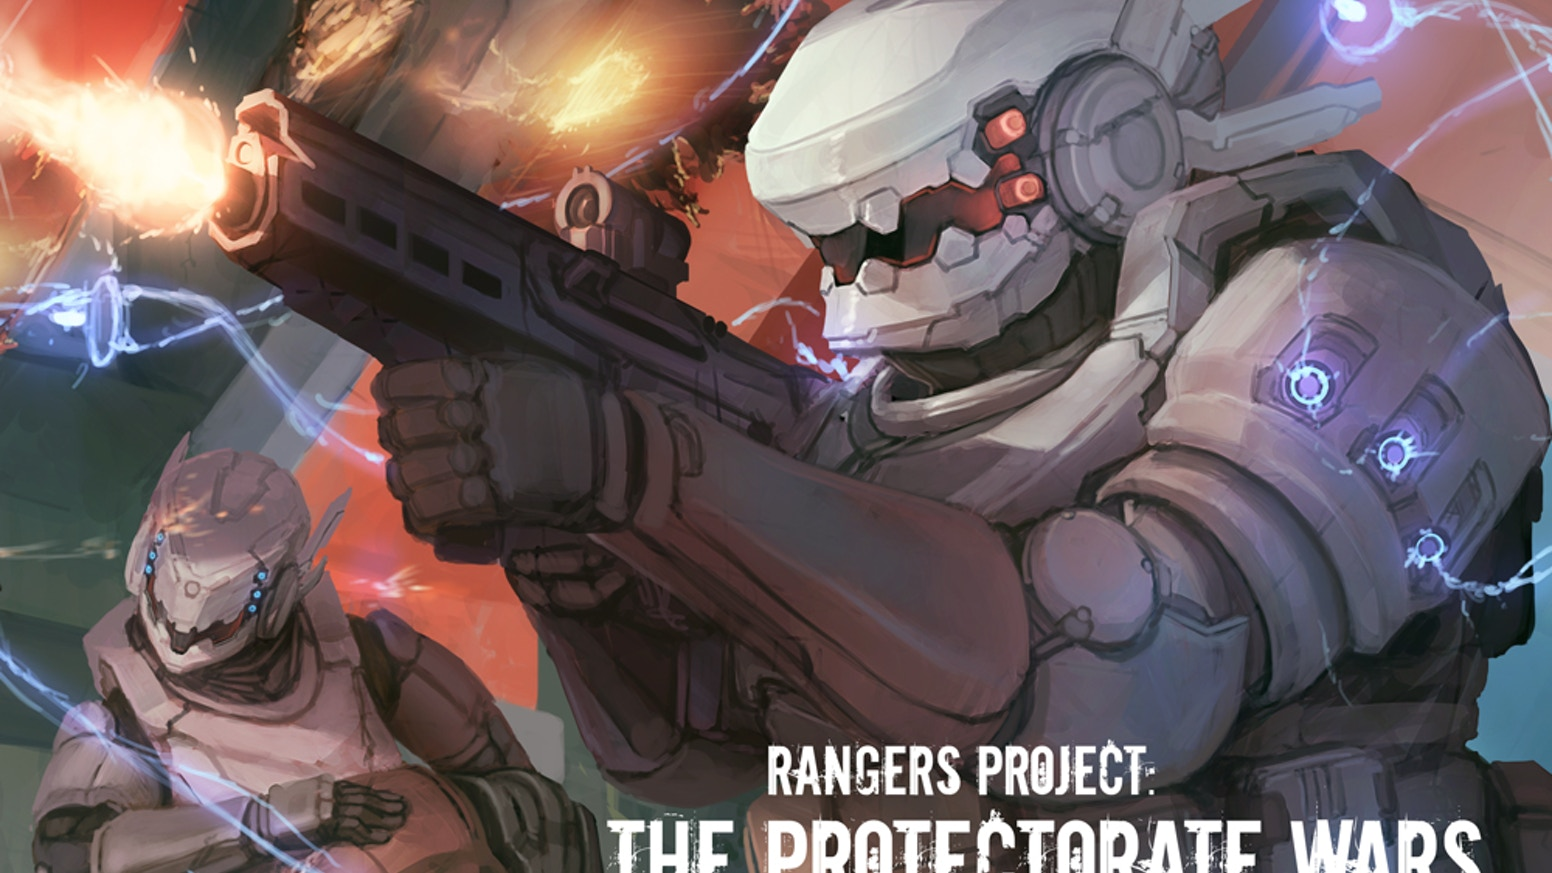 Filled with illustrations and fiction, The Protectorate Wars digital art book presents a view of conflict among the stars.